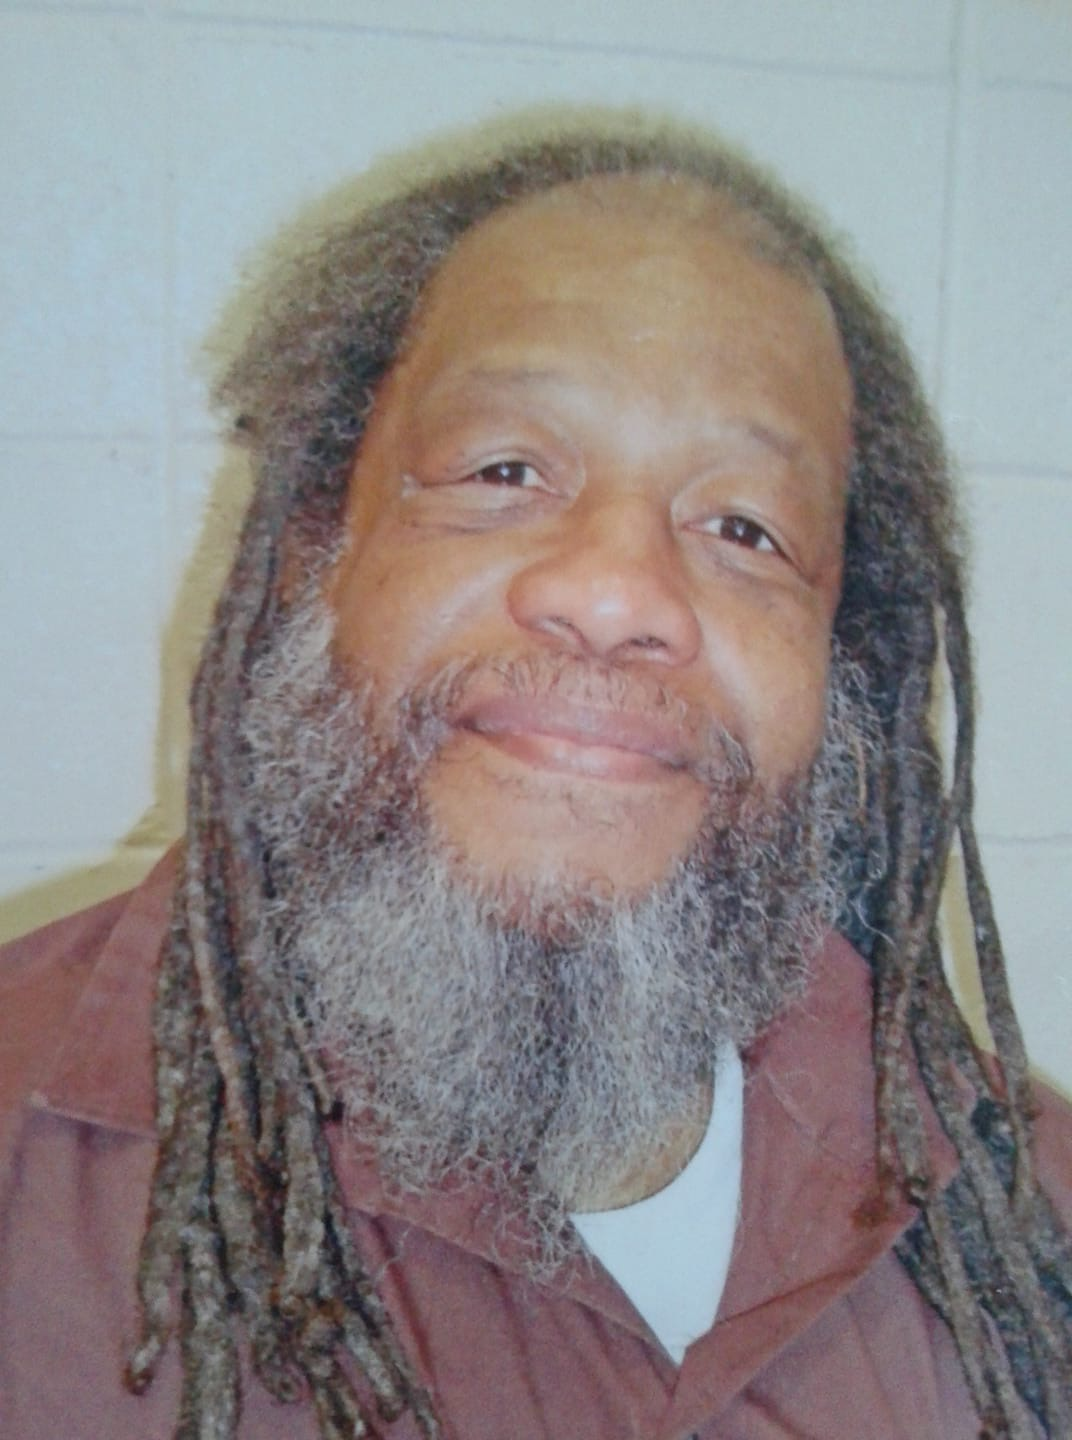 Delbert-Africa, Stop a modern day lynching: Don't let Pennsylvania murder MOVE member Delbert Africa, Behind Enemy Lines